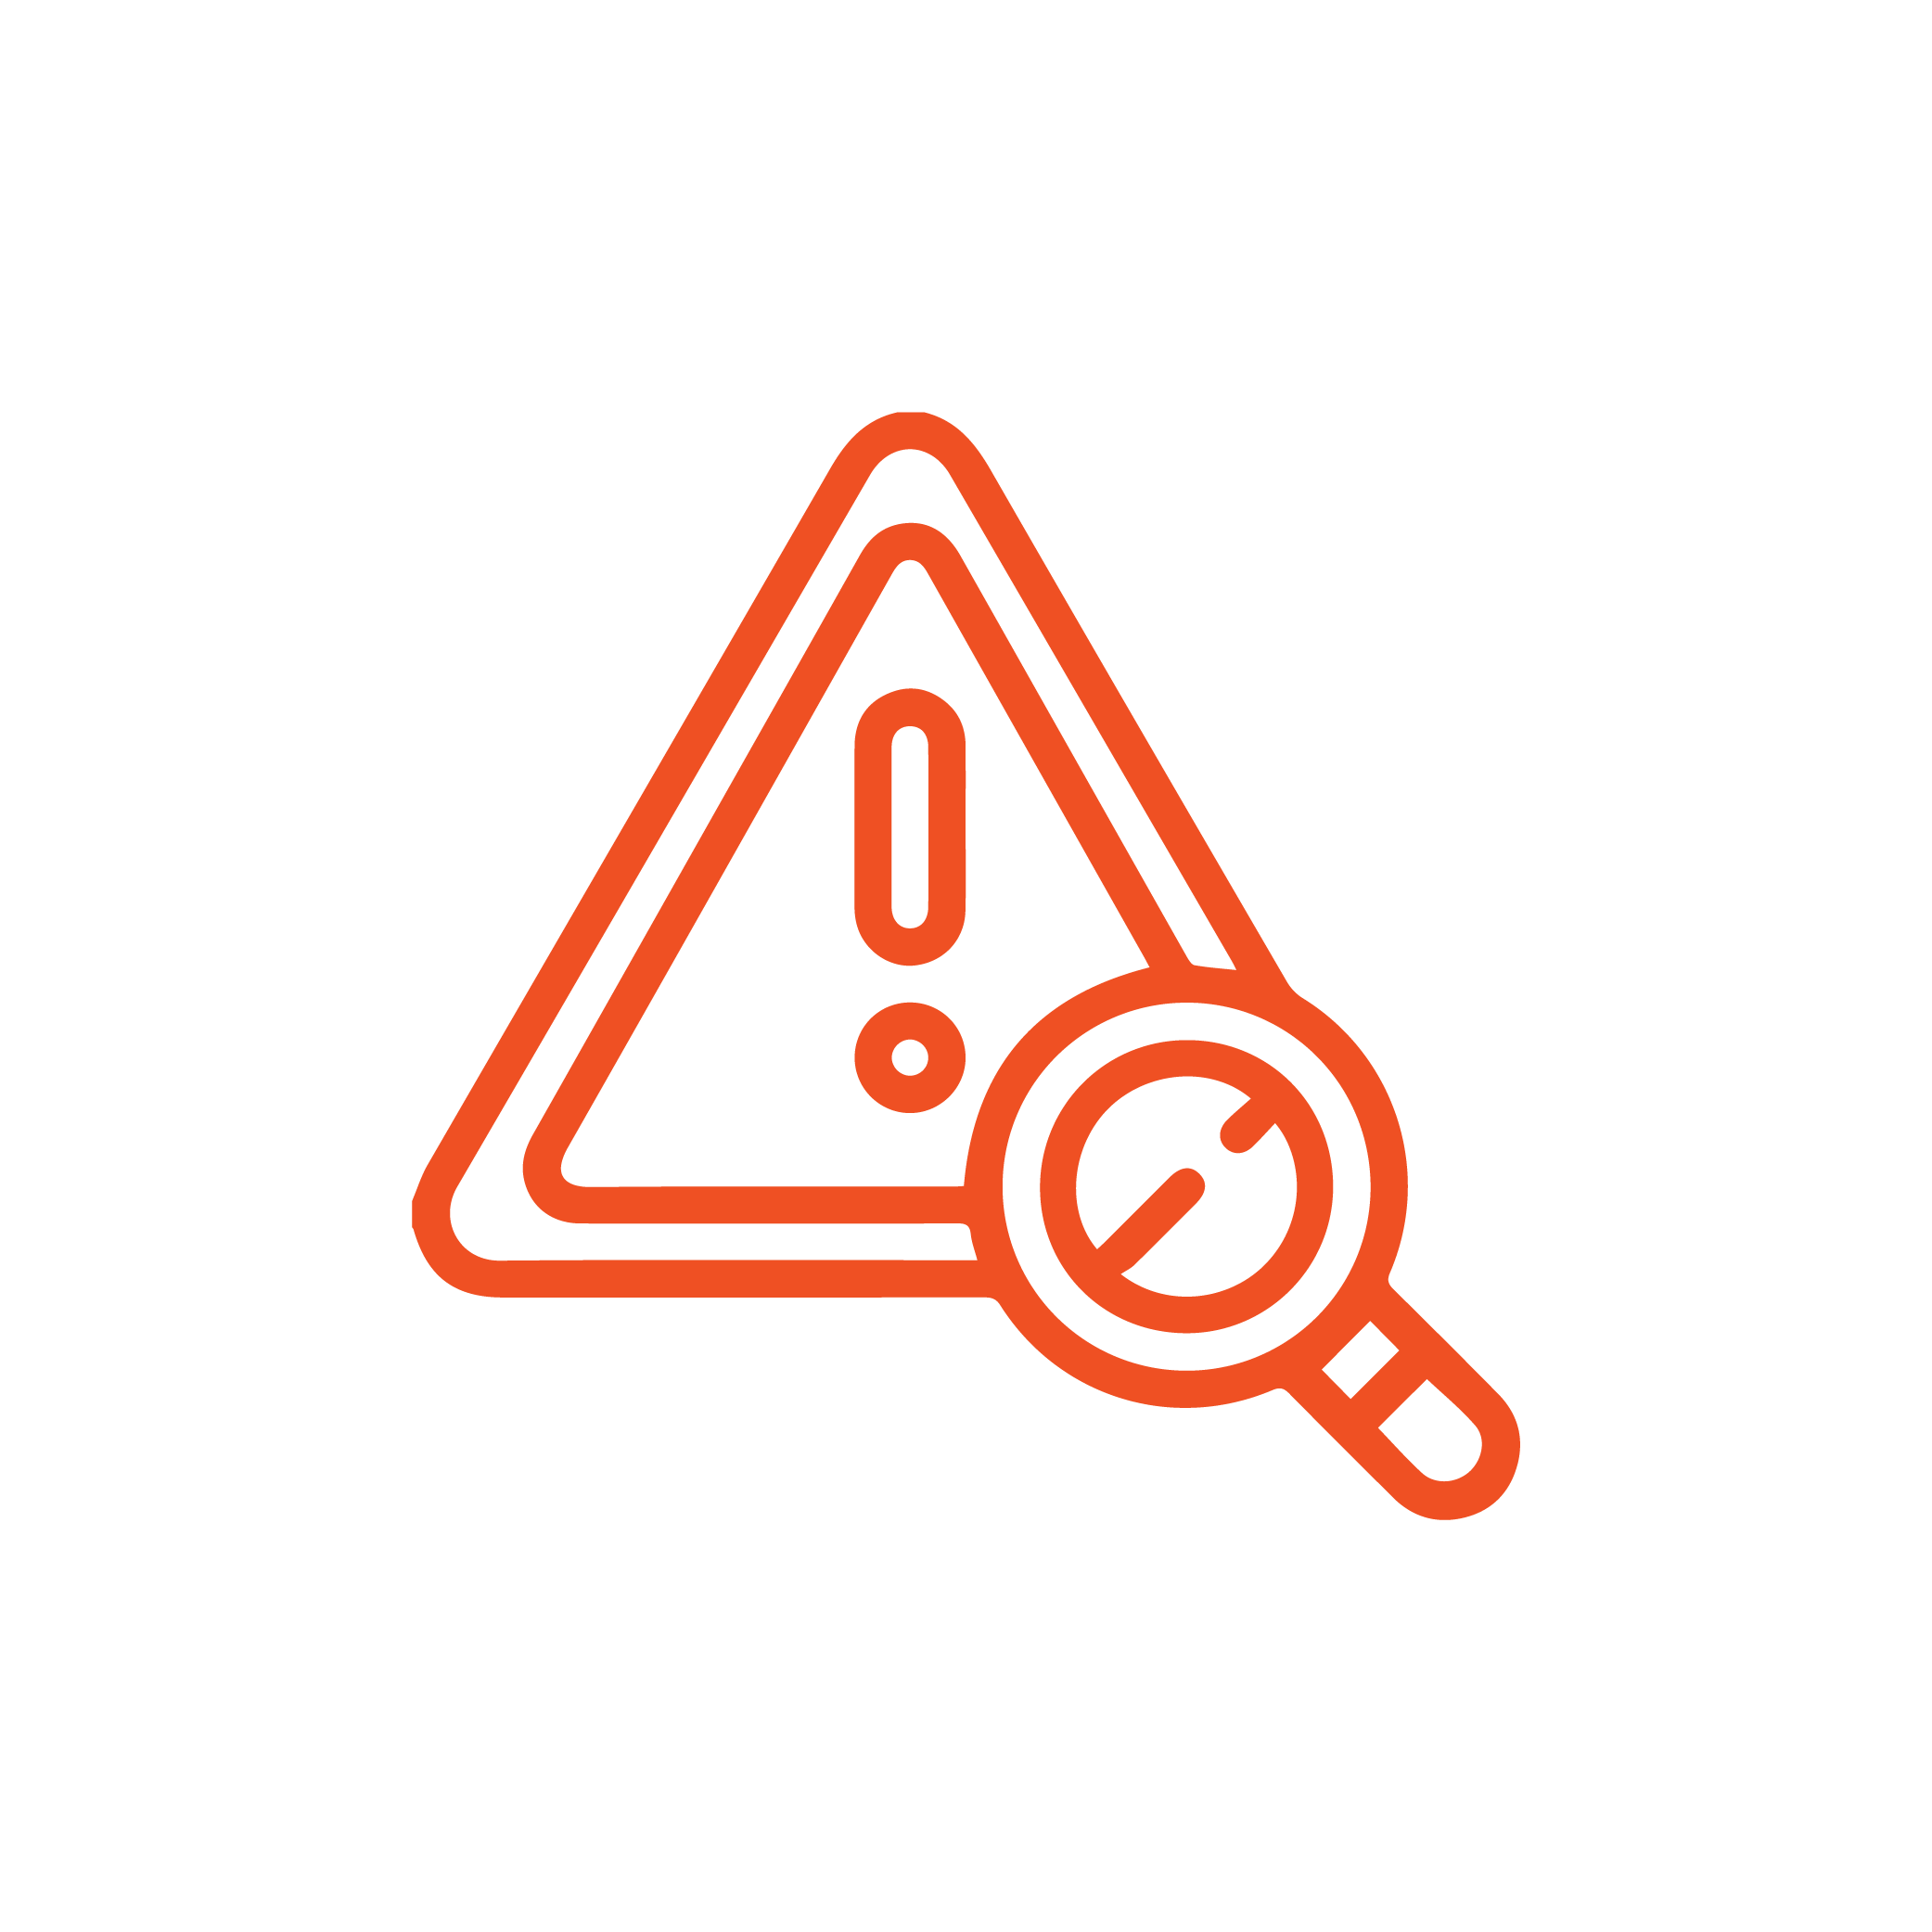 Show-inaccessible-hazardous-area-in-operation